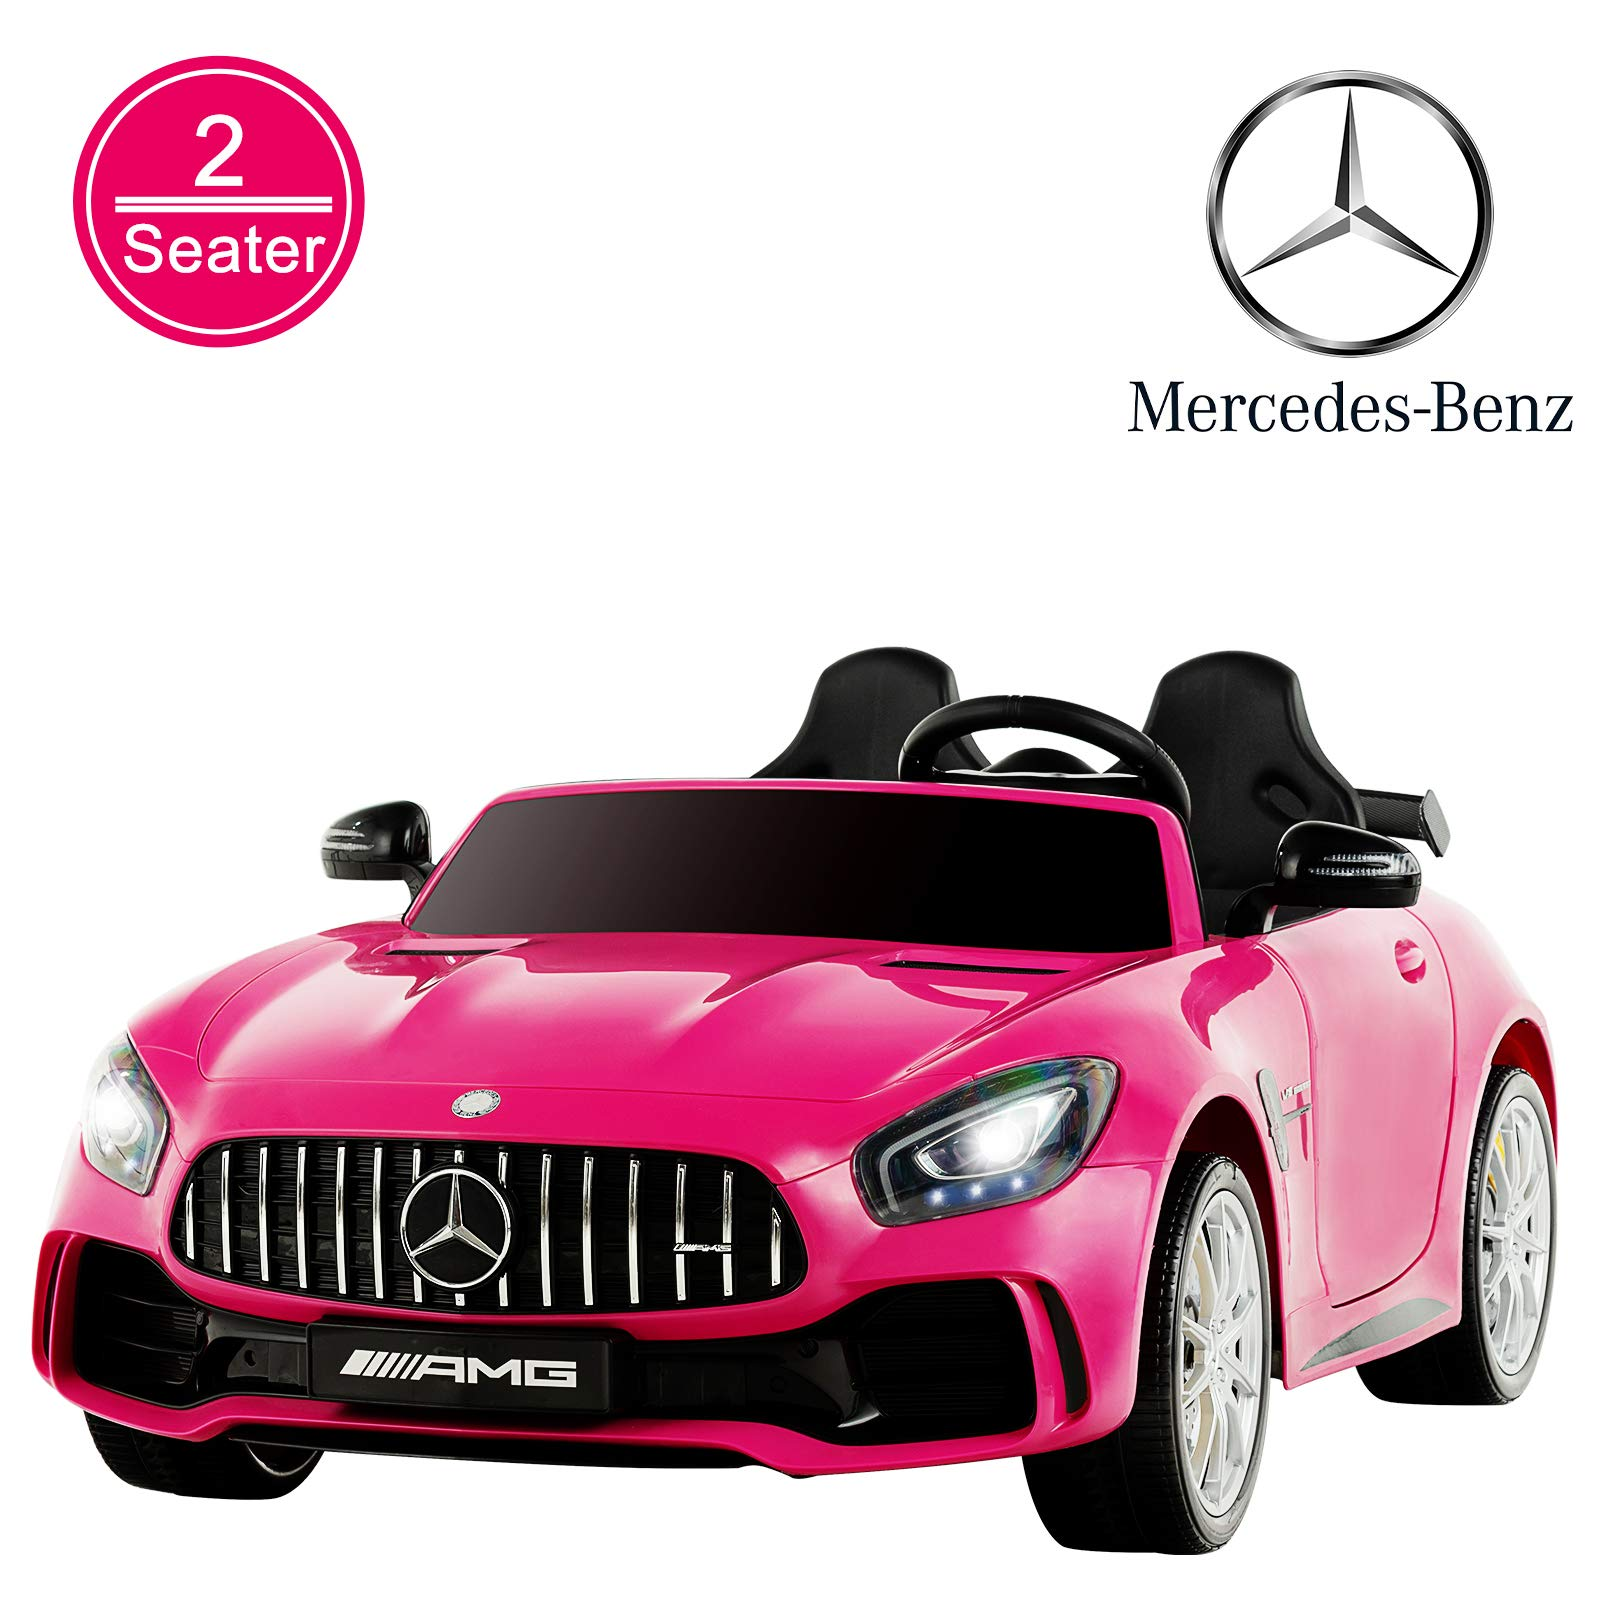 Uenjoy 2 Seater 12V Electric Kids Ride On Car Mercedes Benz AMG GTR Motorized Vehicles with Remote Control, Battery Powered, LED Lights, Wheels Suspension, Music, Horn,Compatible with Mercedes, Pink